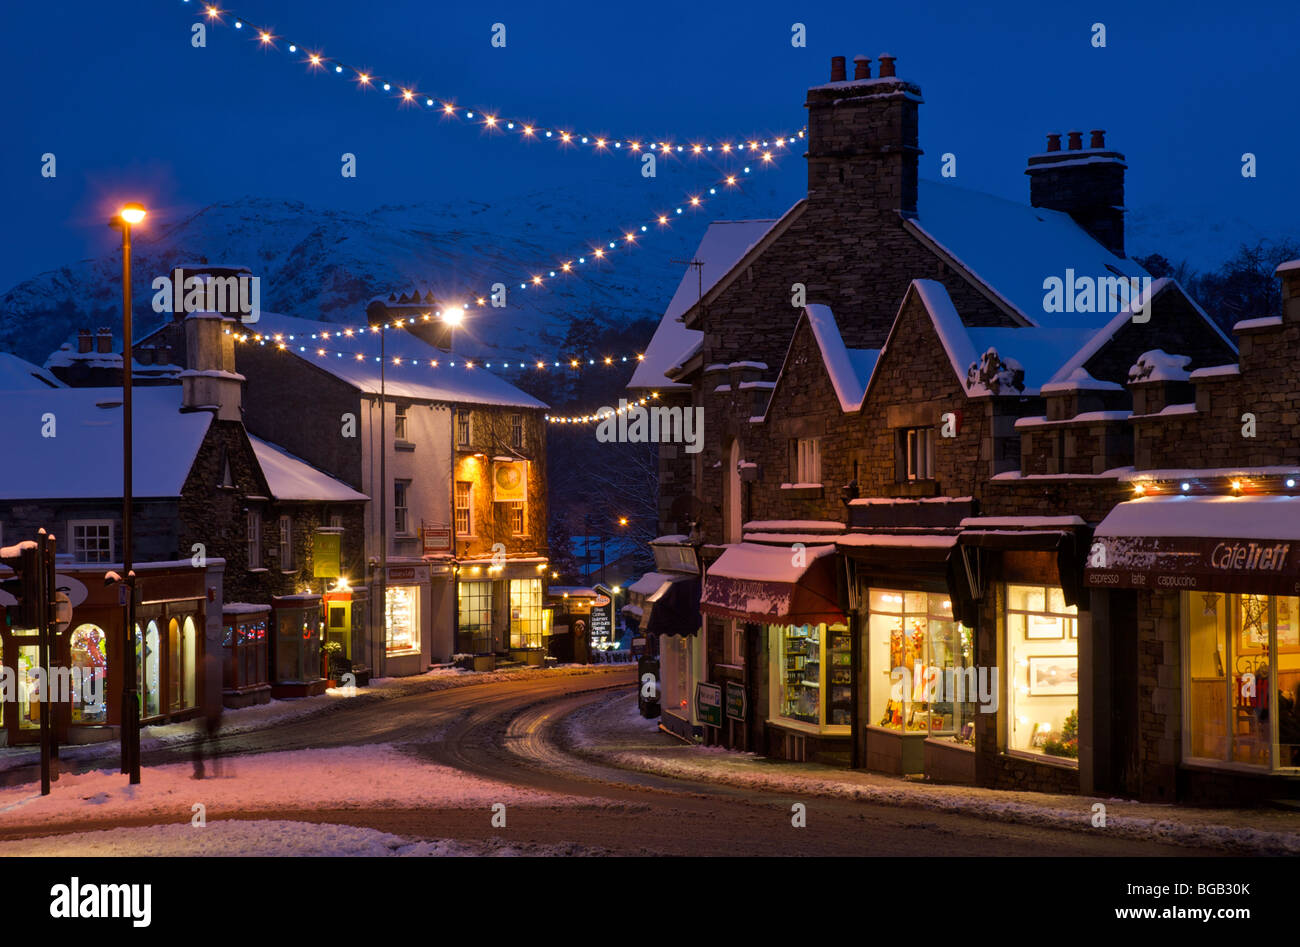 Ambleside at night, overlooked by Loughrigg Fell, Lake District National Park, Cumbria, England UK - Stock Image